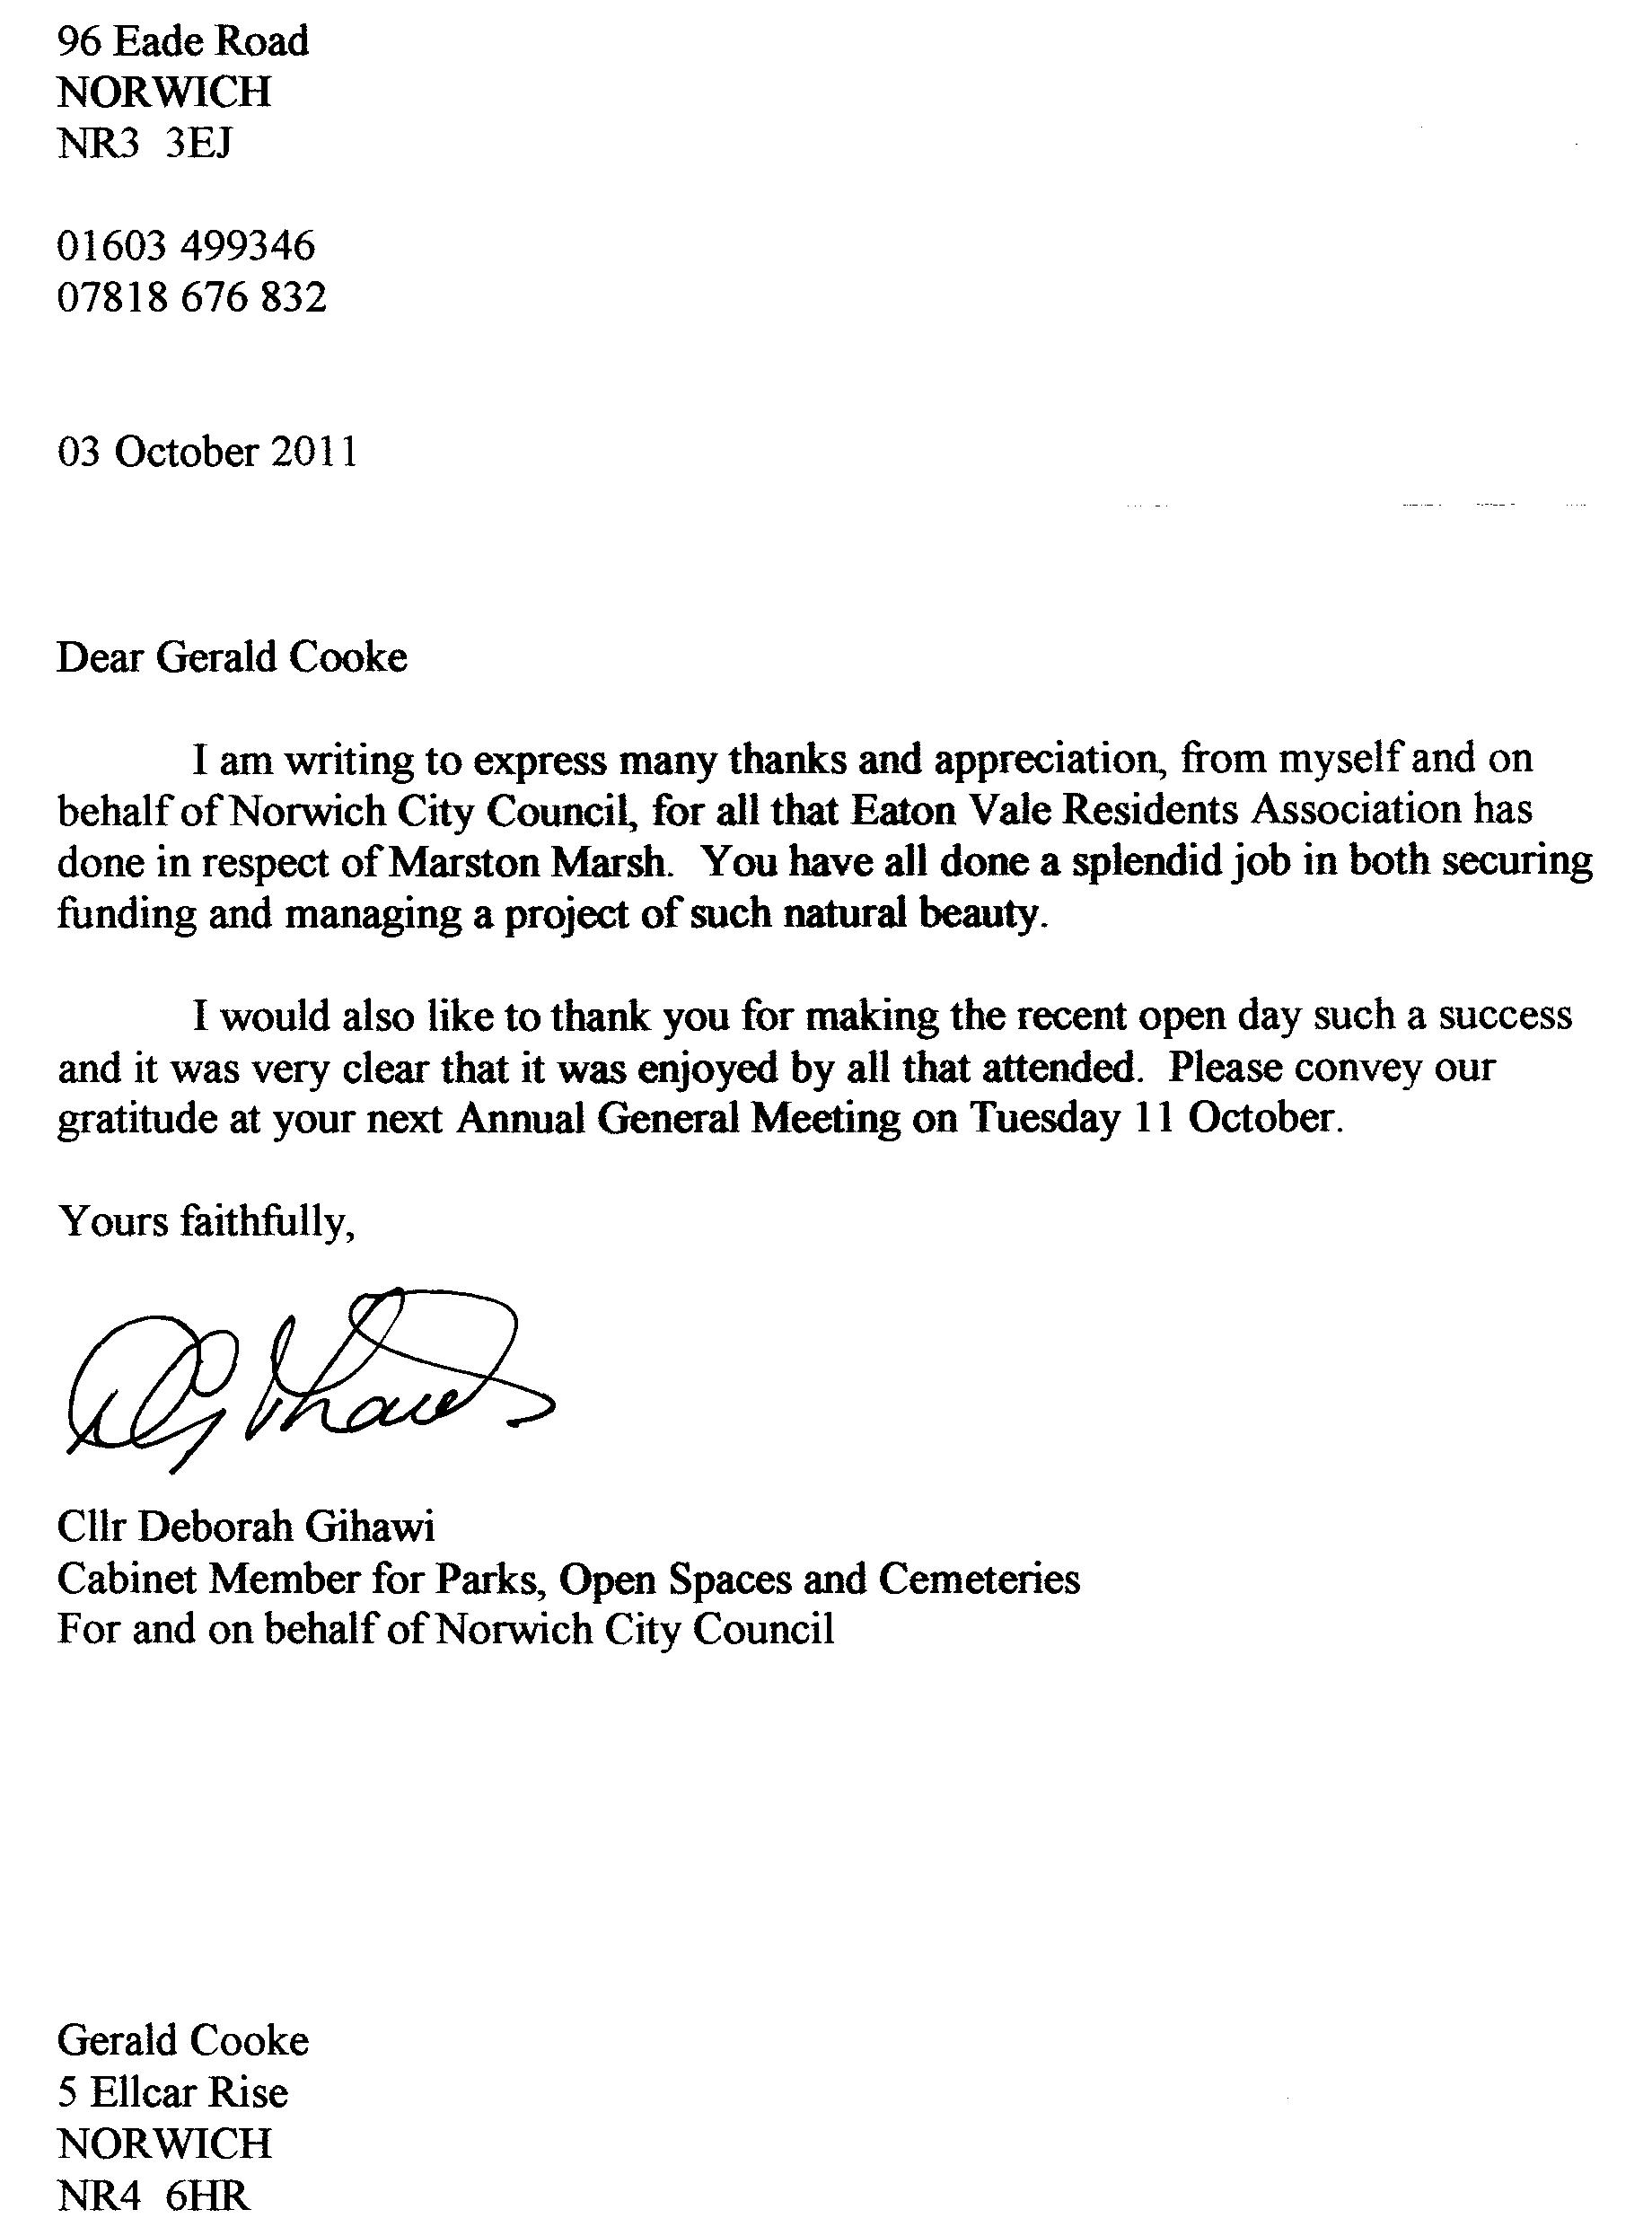 Norwich City Council thanks EVRA for all its hard work to get ...